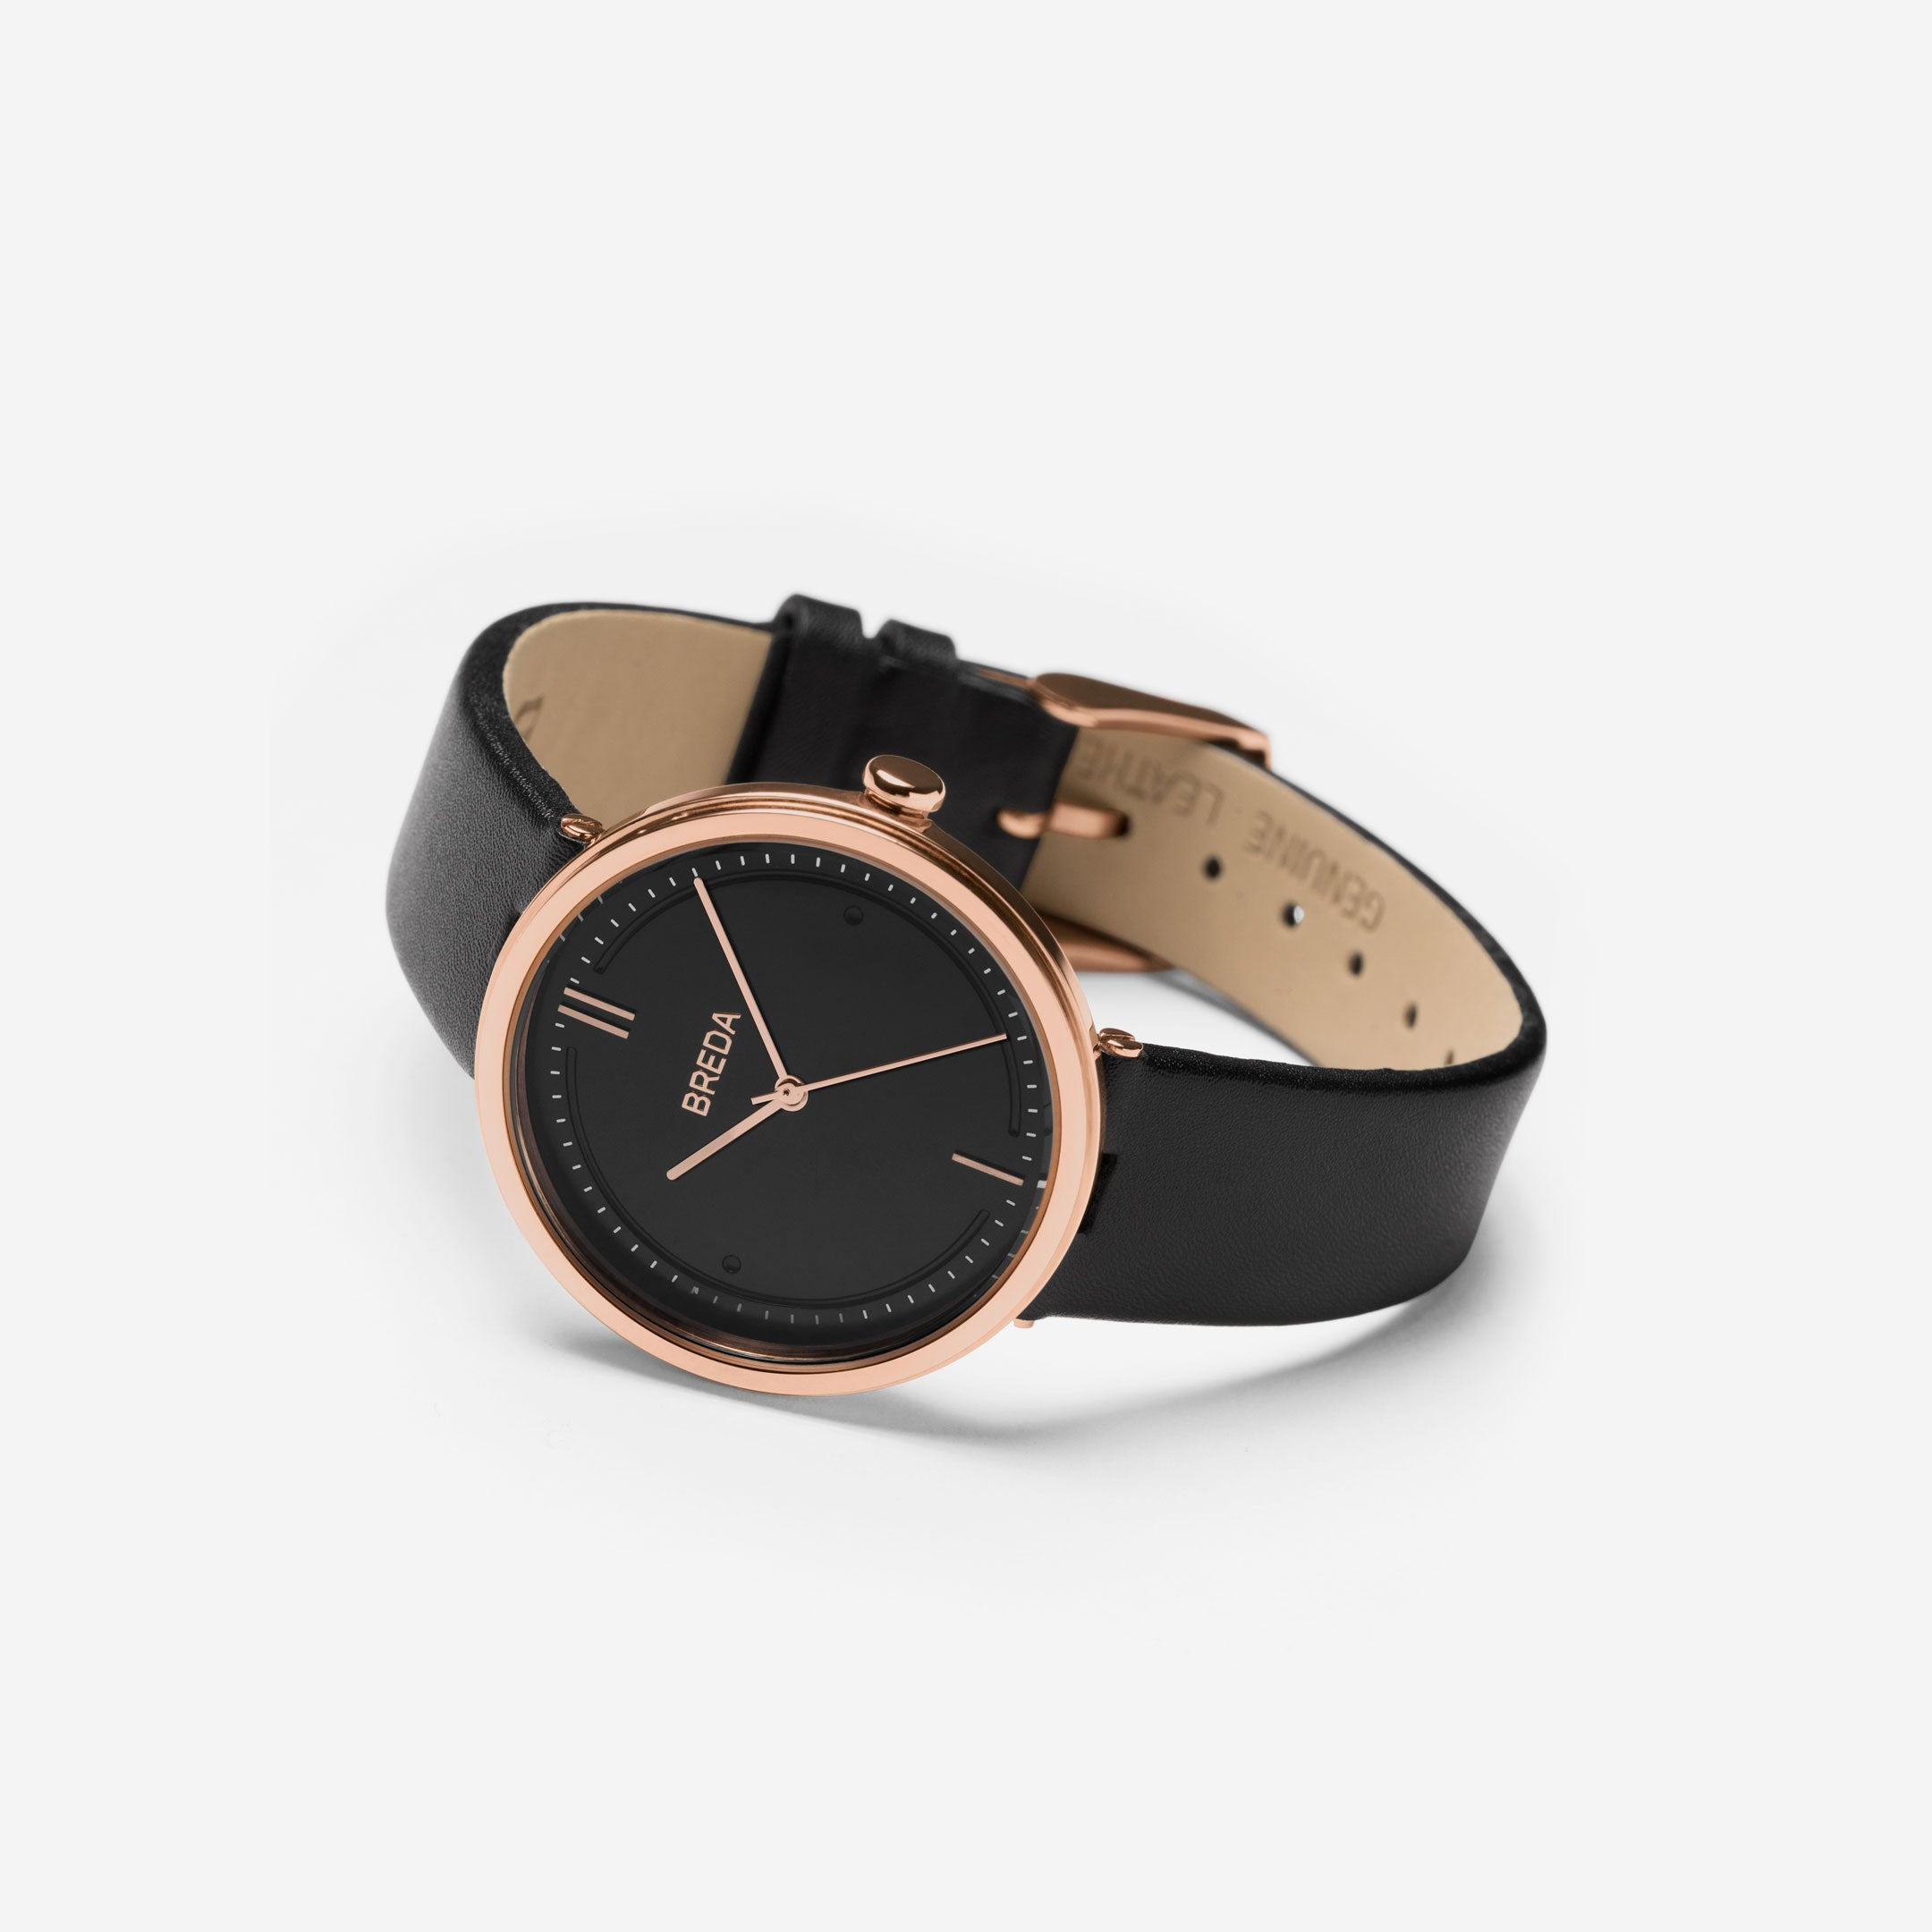 //cdn.shopify.com/s/files/1/0879/6650/products/breda-agnes-1733b-rosegold-black-leather-watch-angle_1024x1024.jpg?v=1522789001